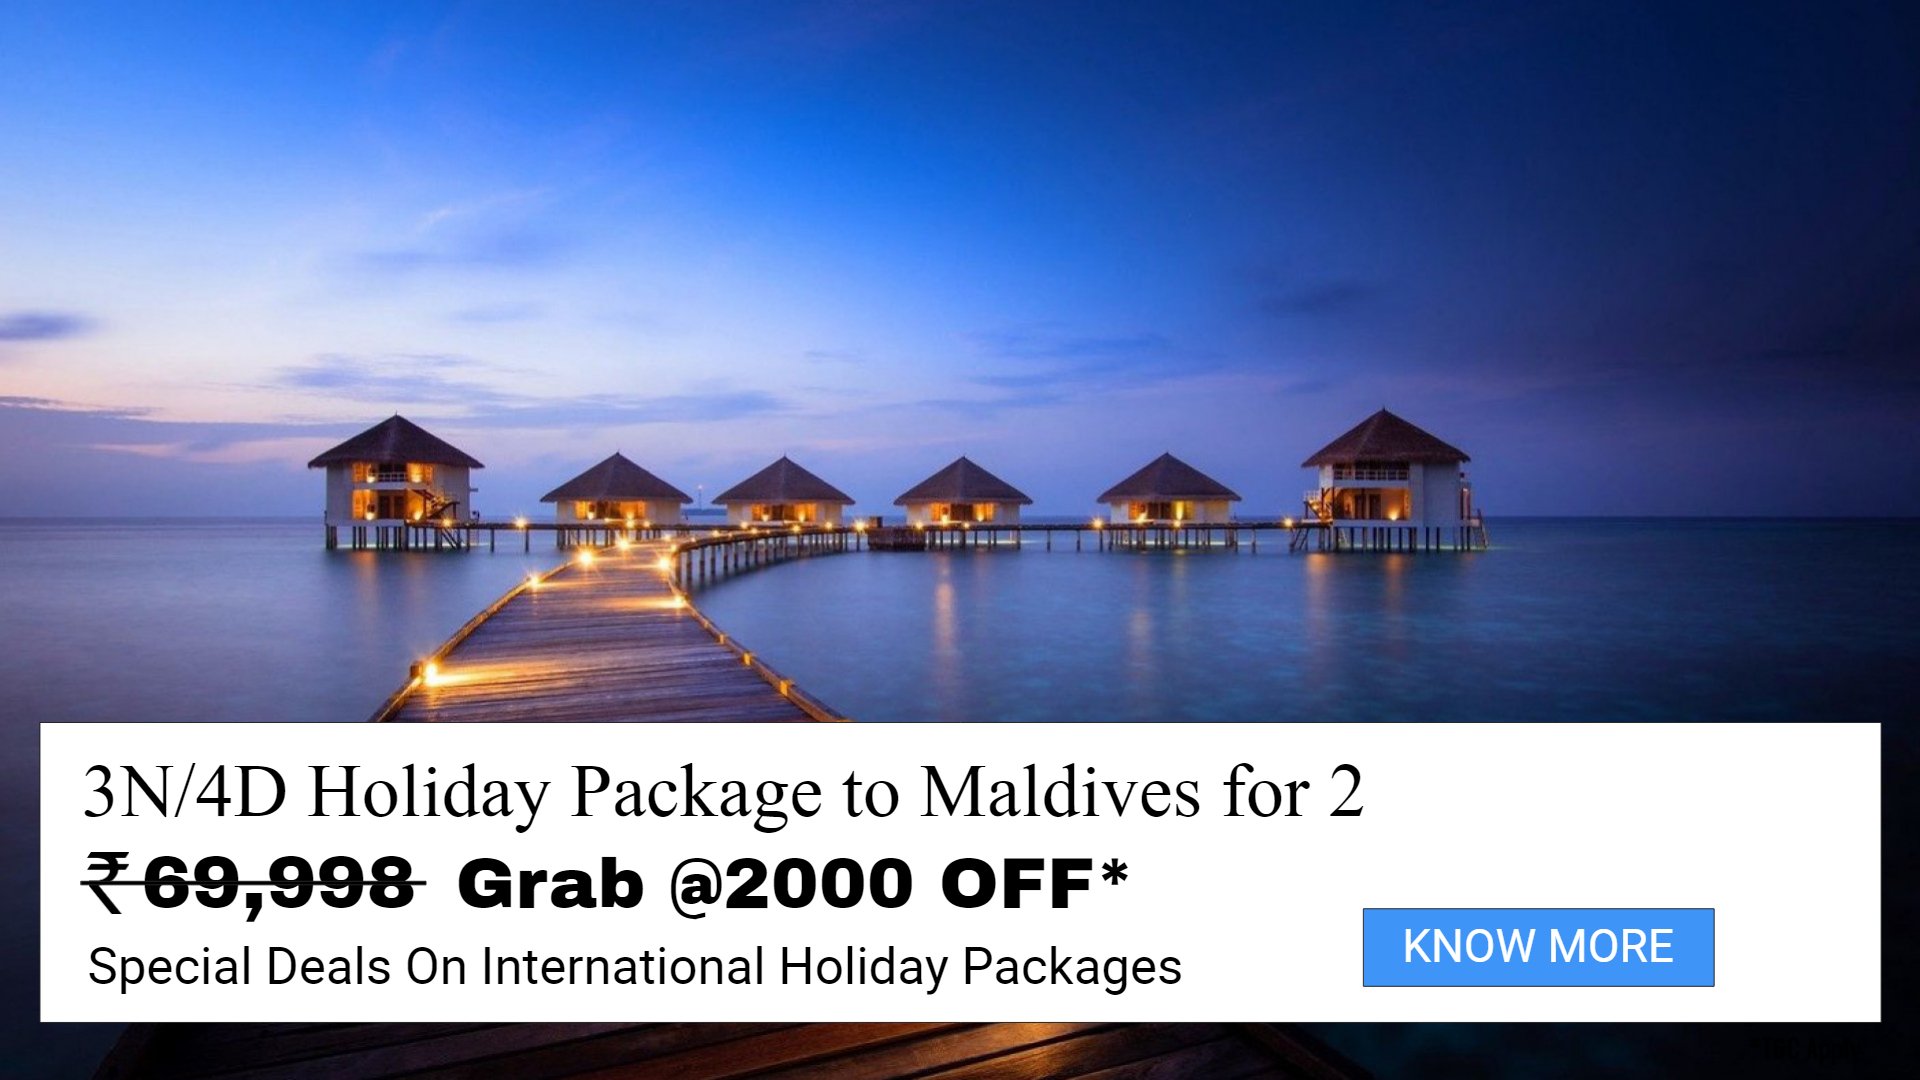 Maldives Special Deal for Honeymooners